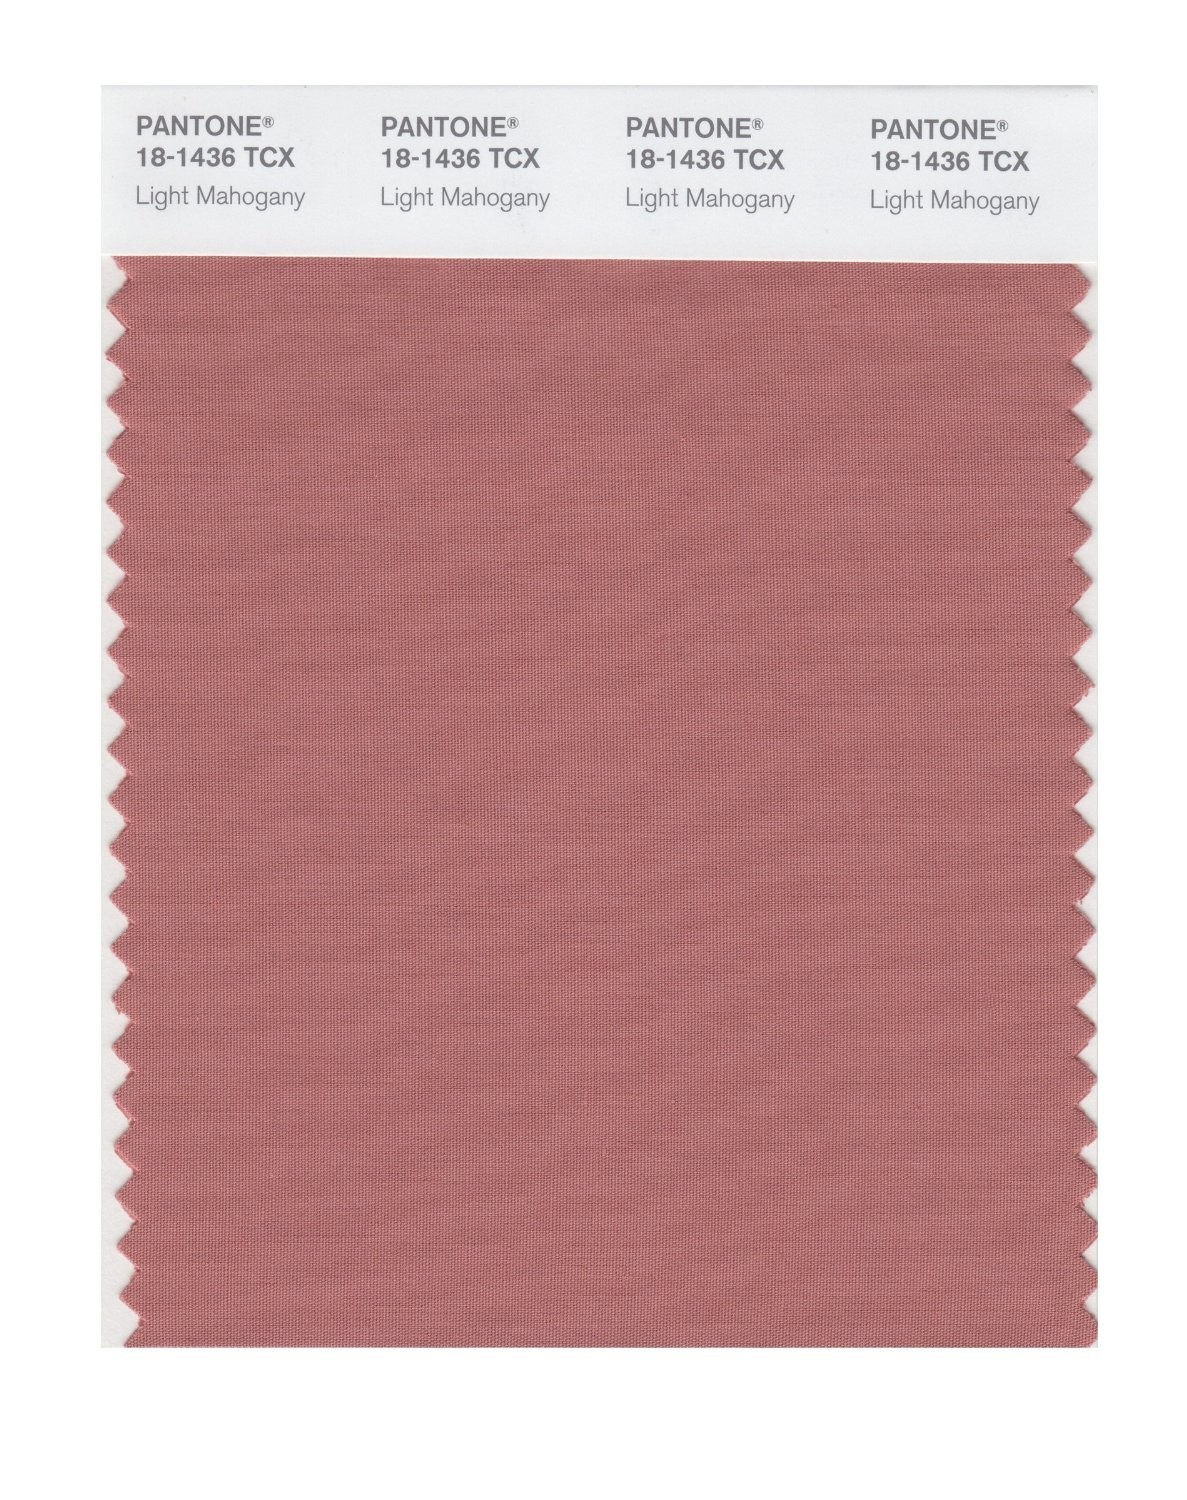 Pantone 18-1436 TCX Swatch Card Light Mahogany